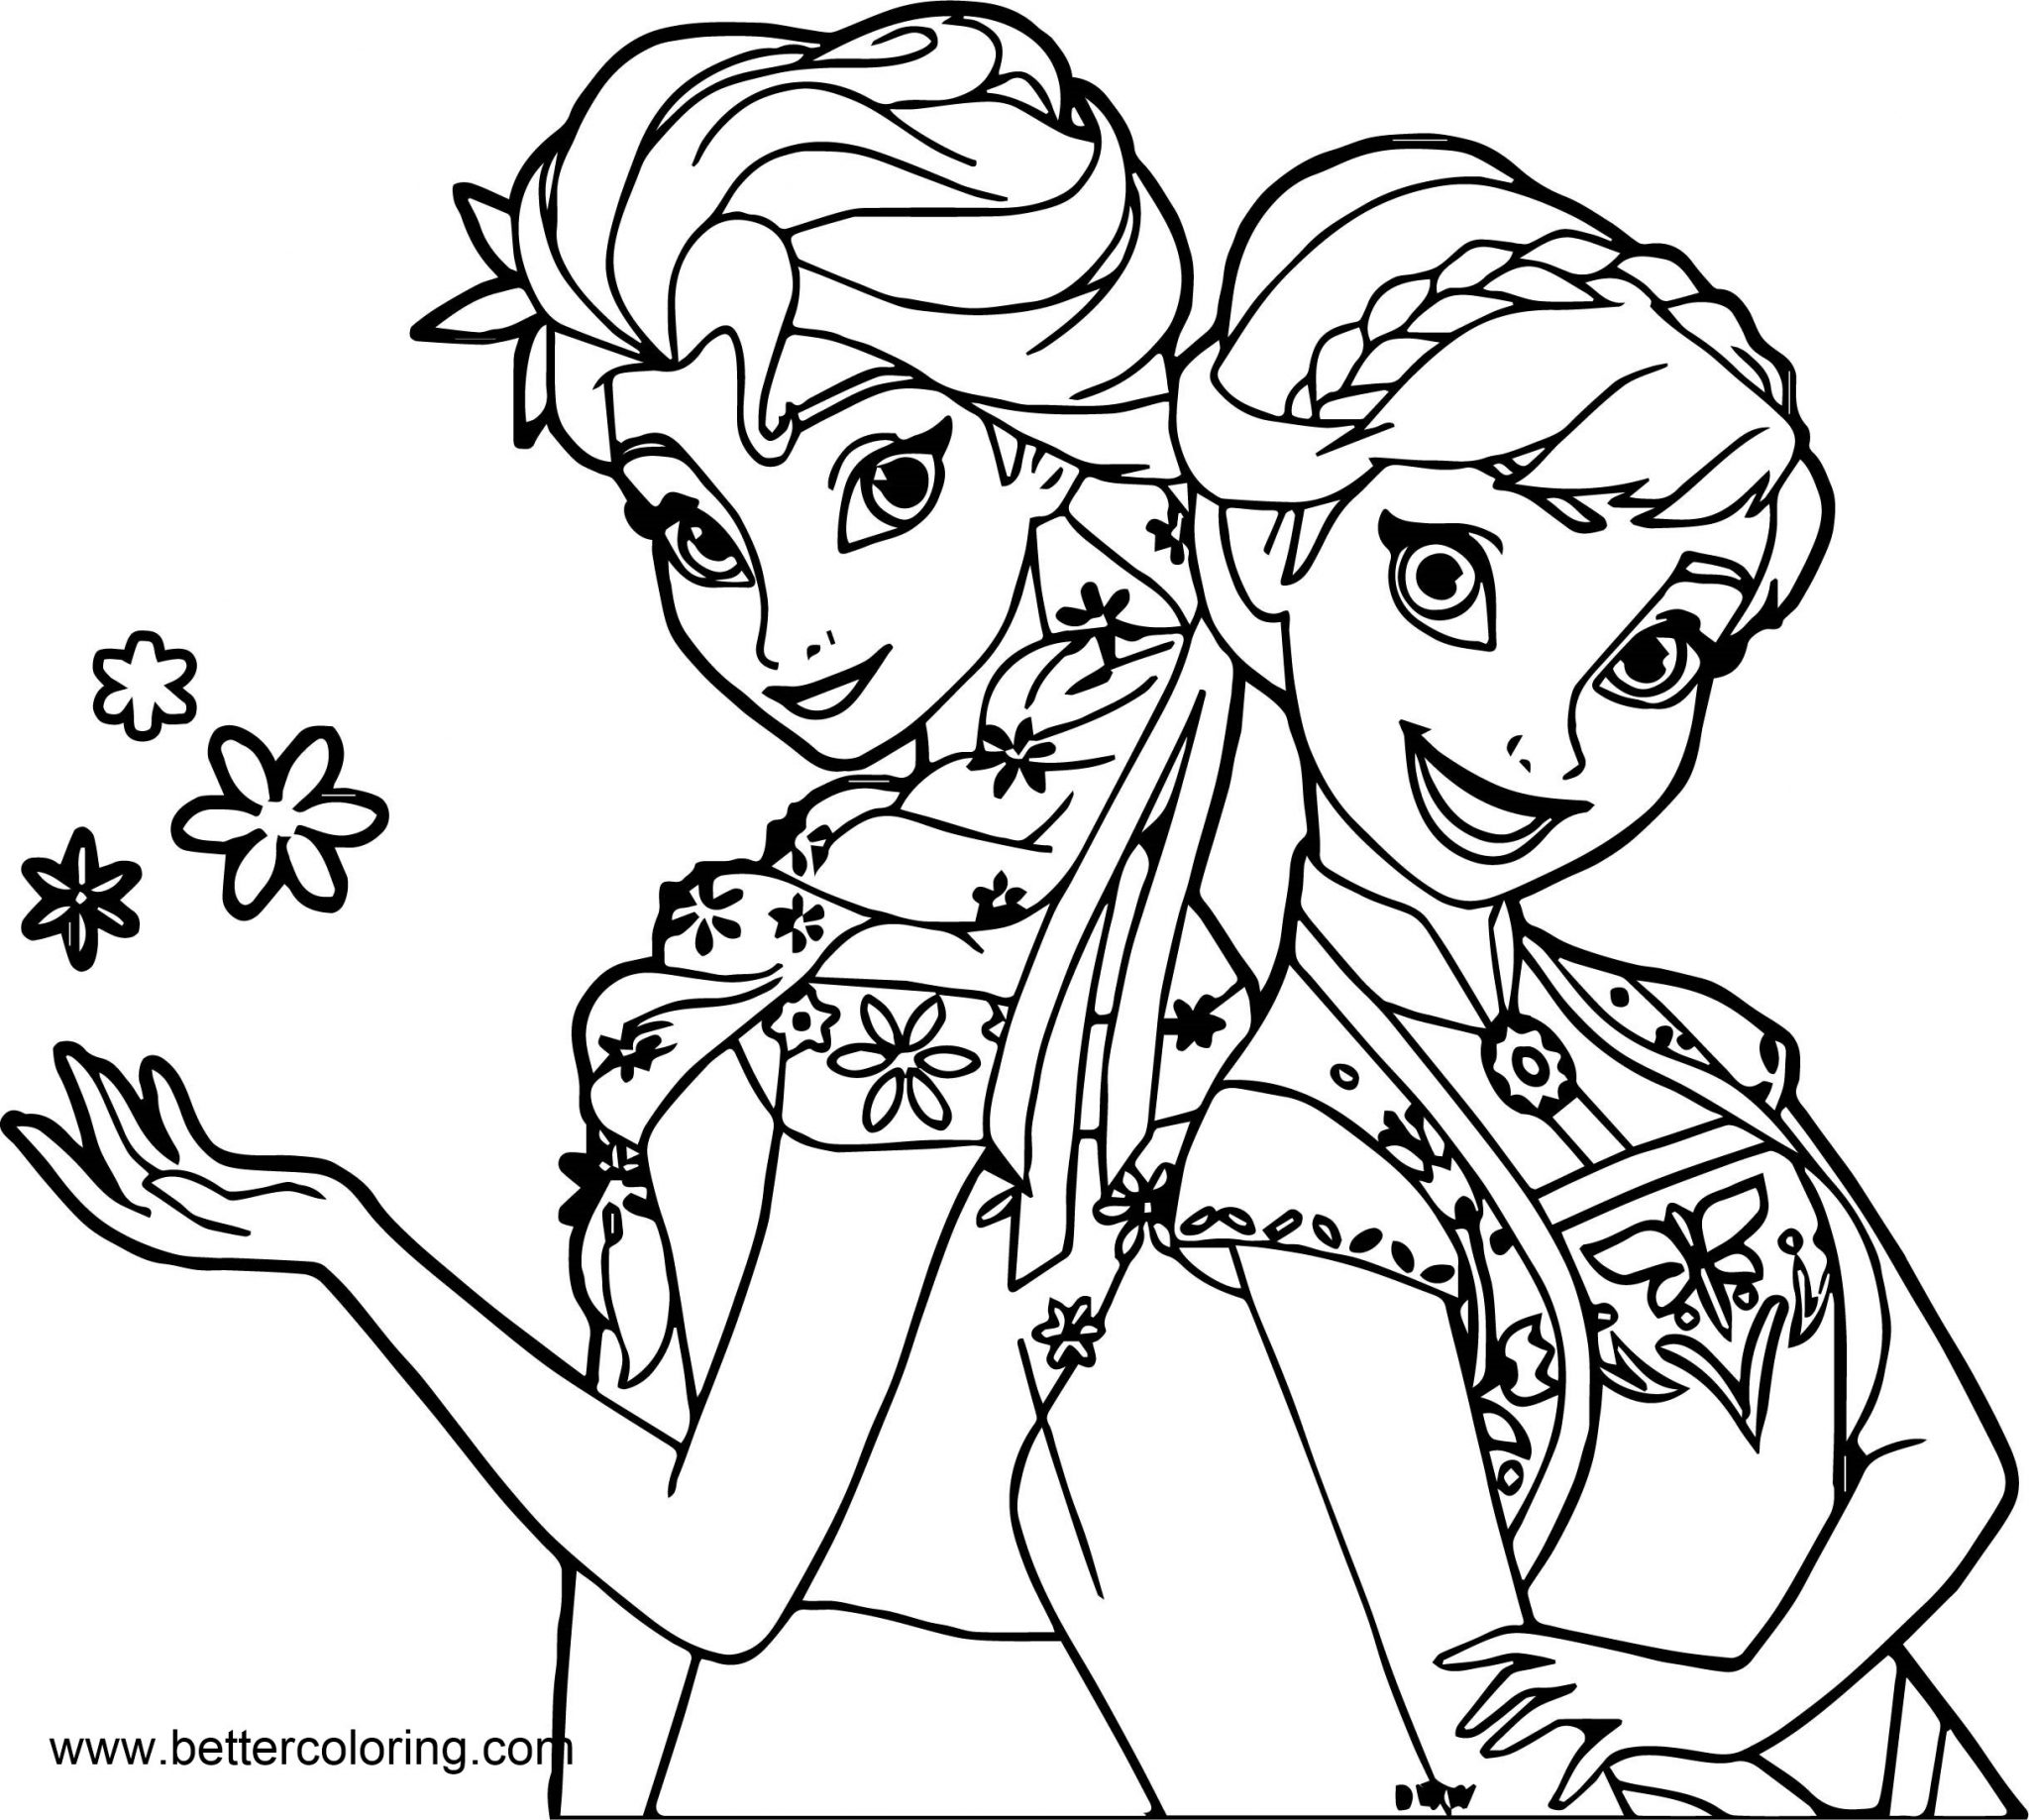 Frozen Elsa And Anna Coloring Pages Free Printable Coloring Pages